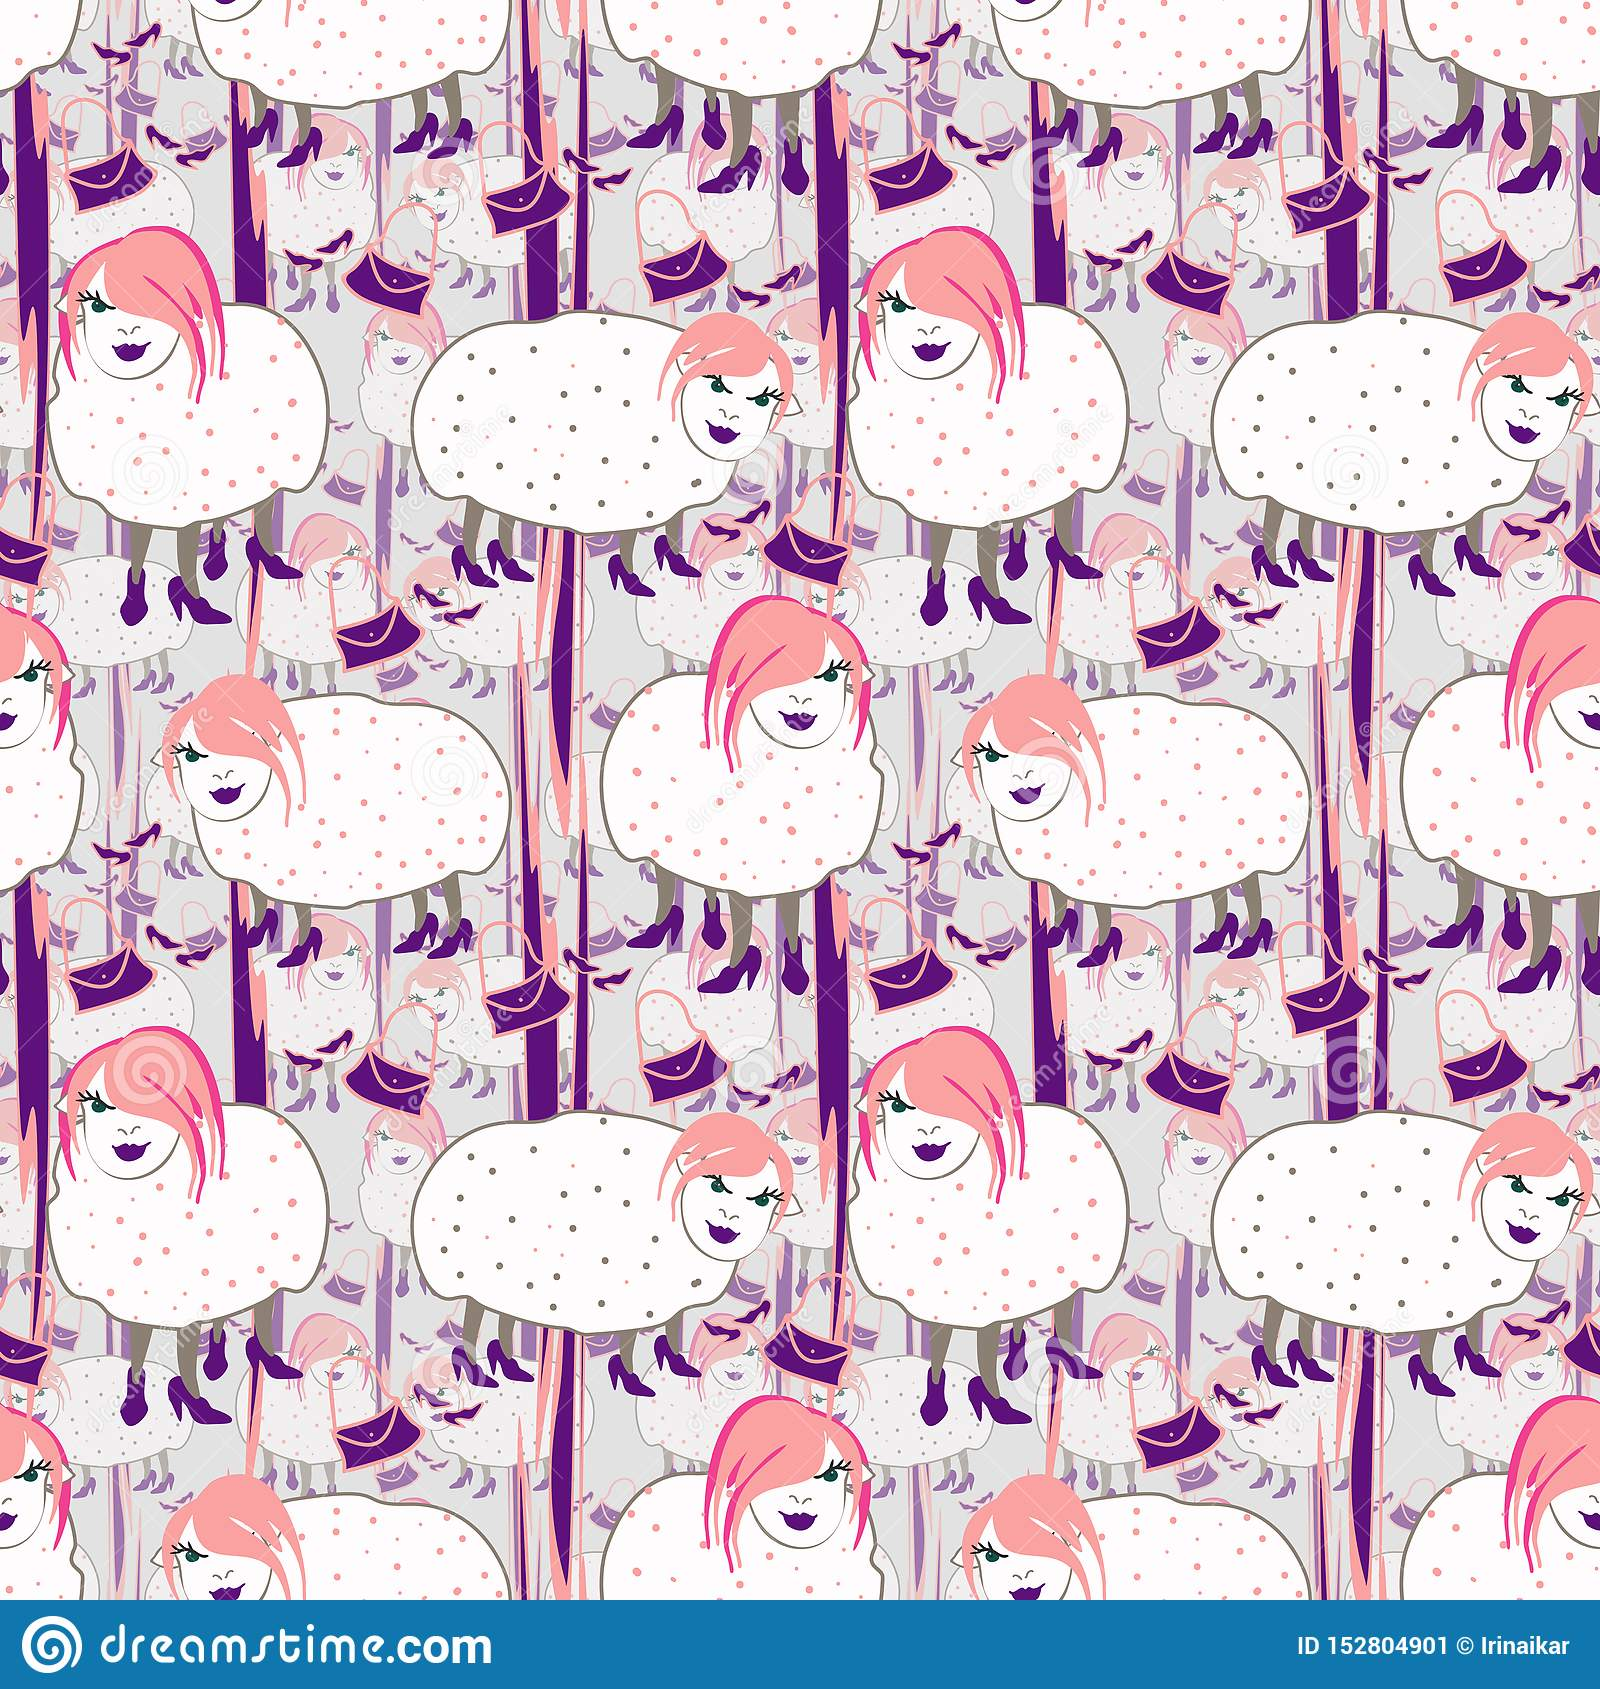 Hand drawn fashionista sheeps with pink hair on gray background